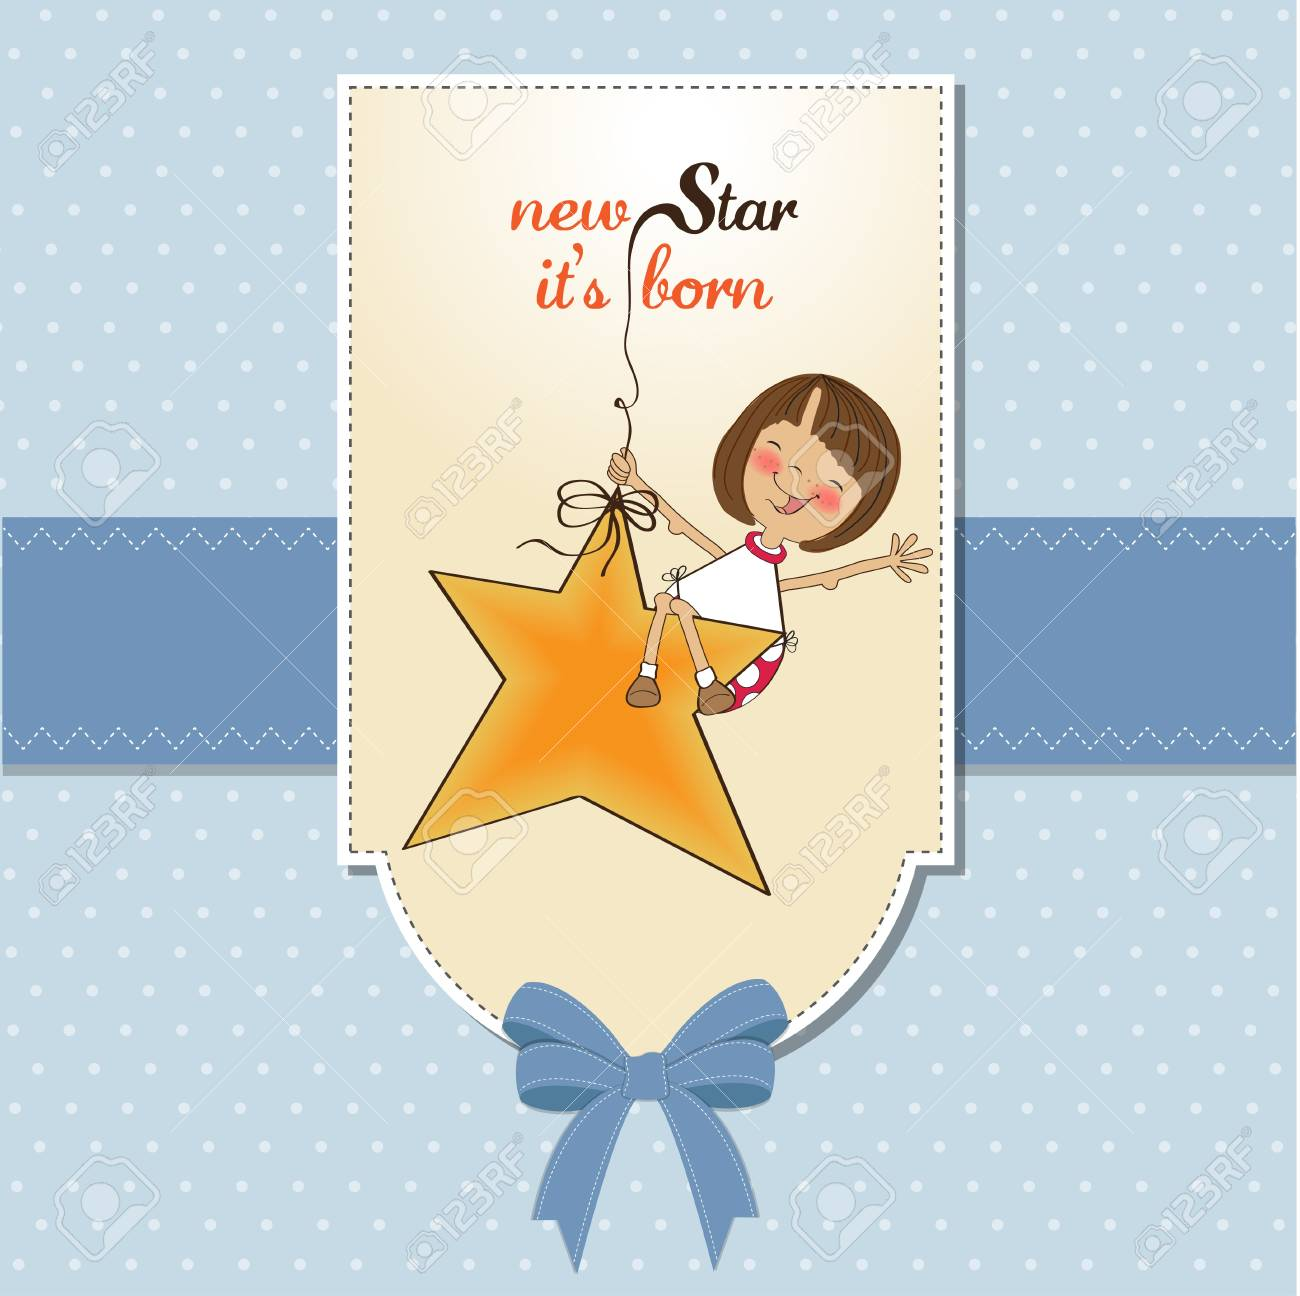 new star it's born.welcome baby card Stock Vector - 11842066